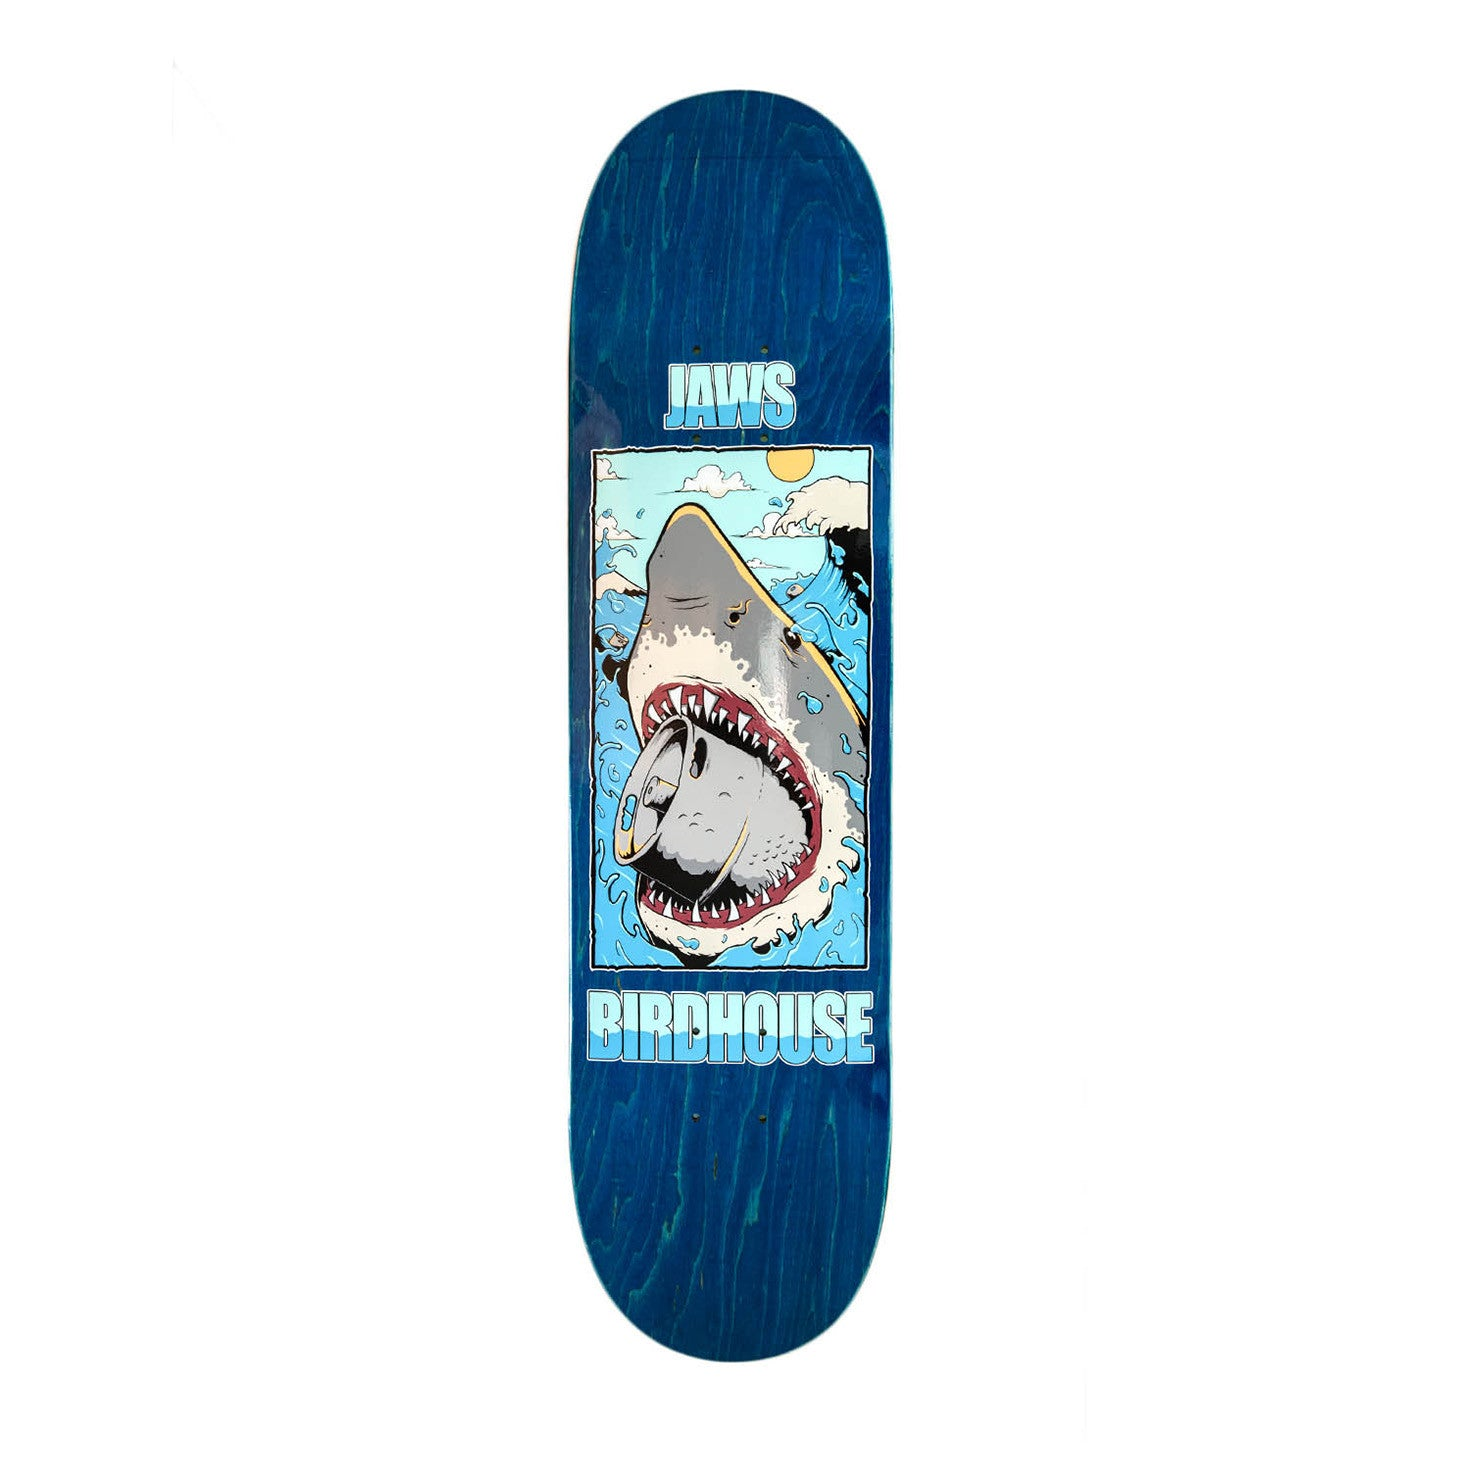 birdhouse skateboard decks